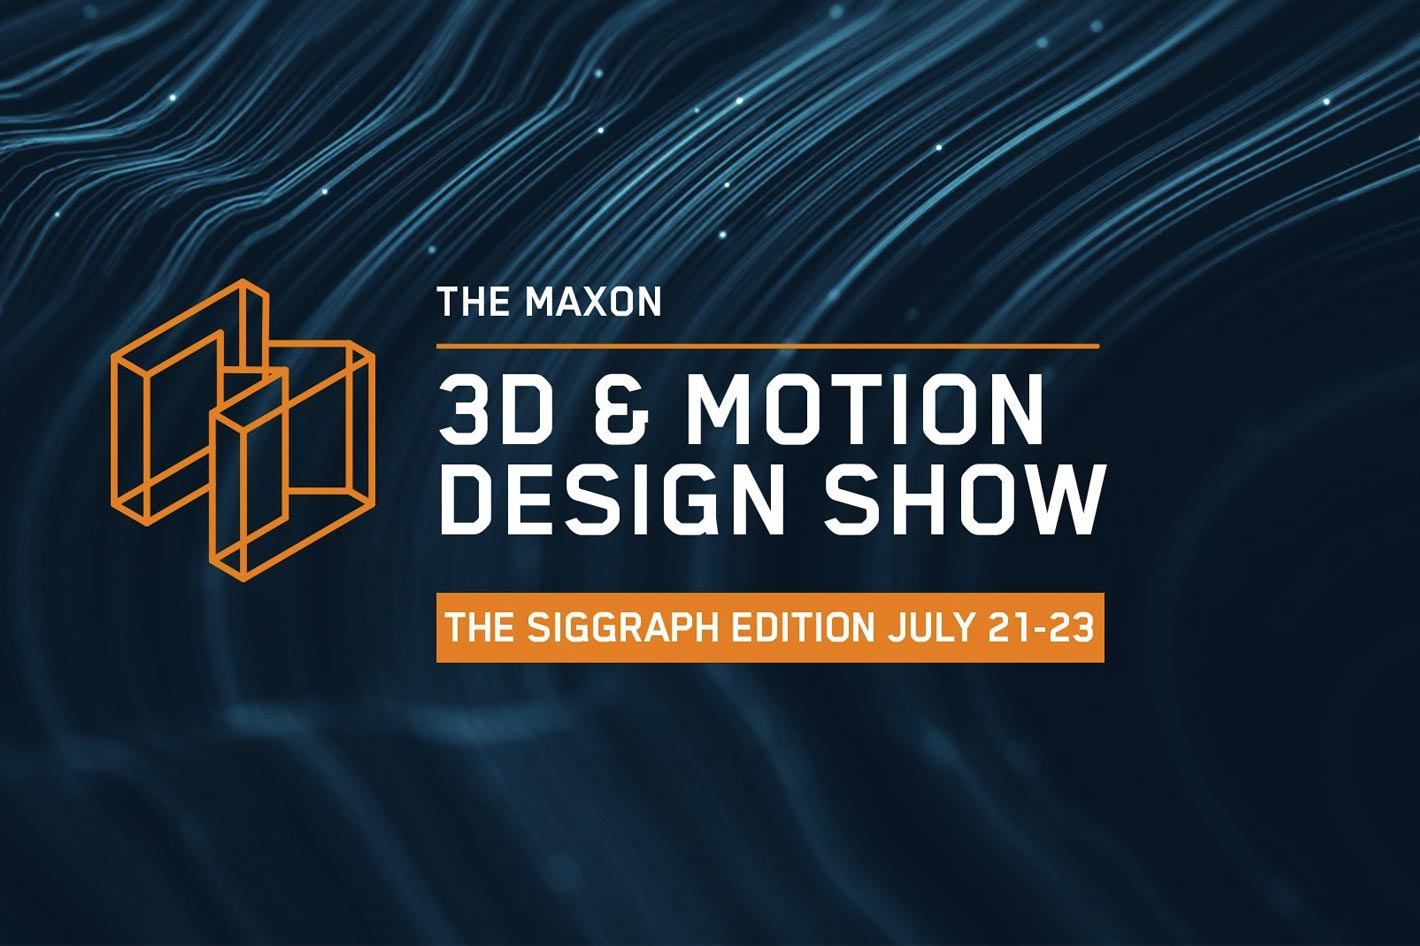 Maxon's 3D and Motion Design Show is next week